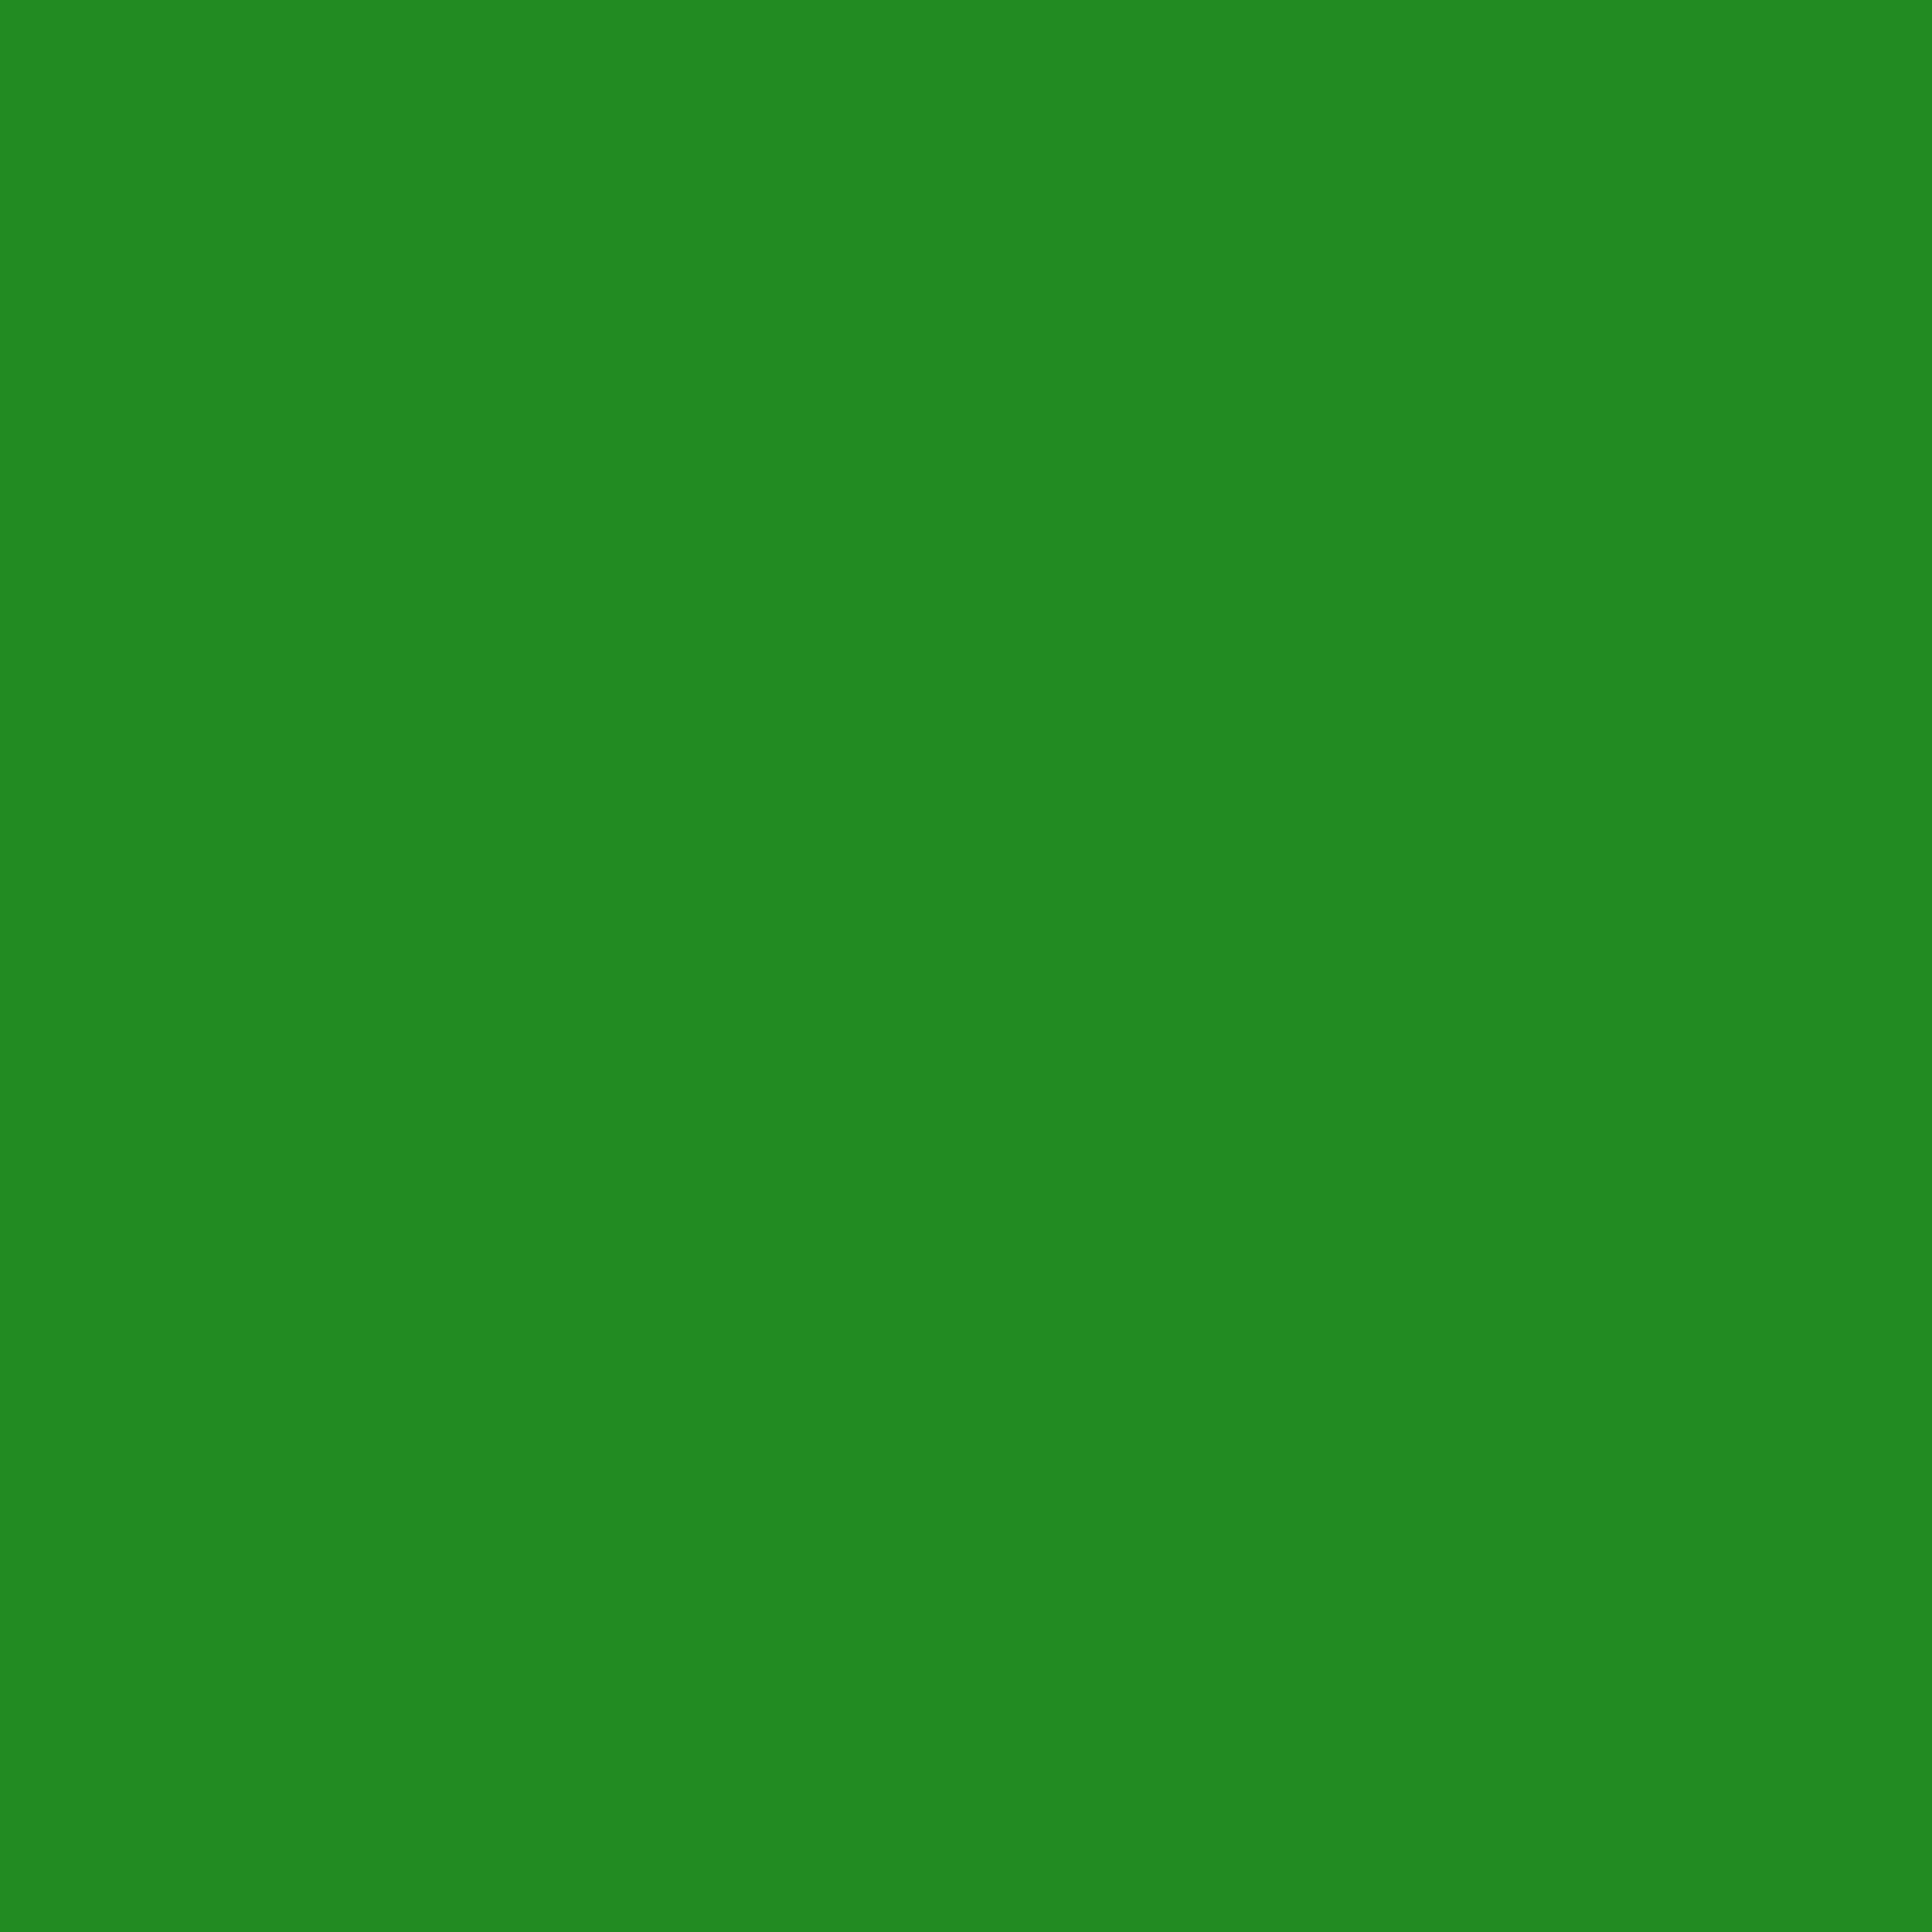 2732x2732 Forest Green For Web Solid Color Background